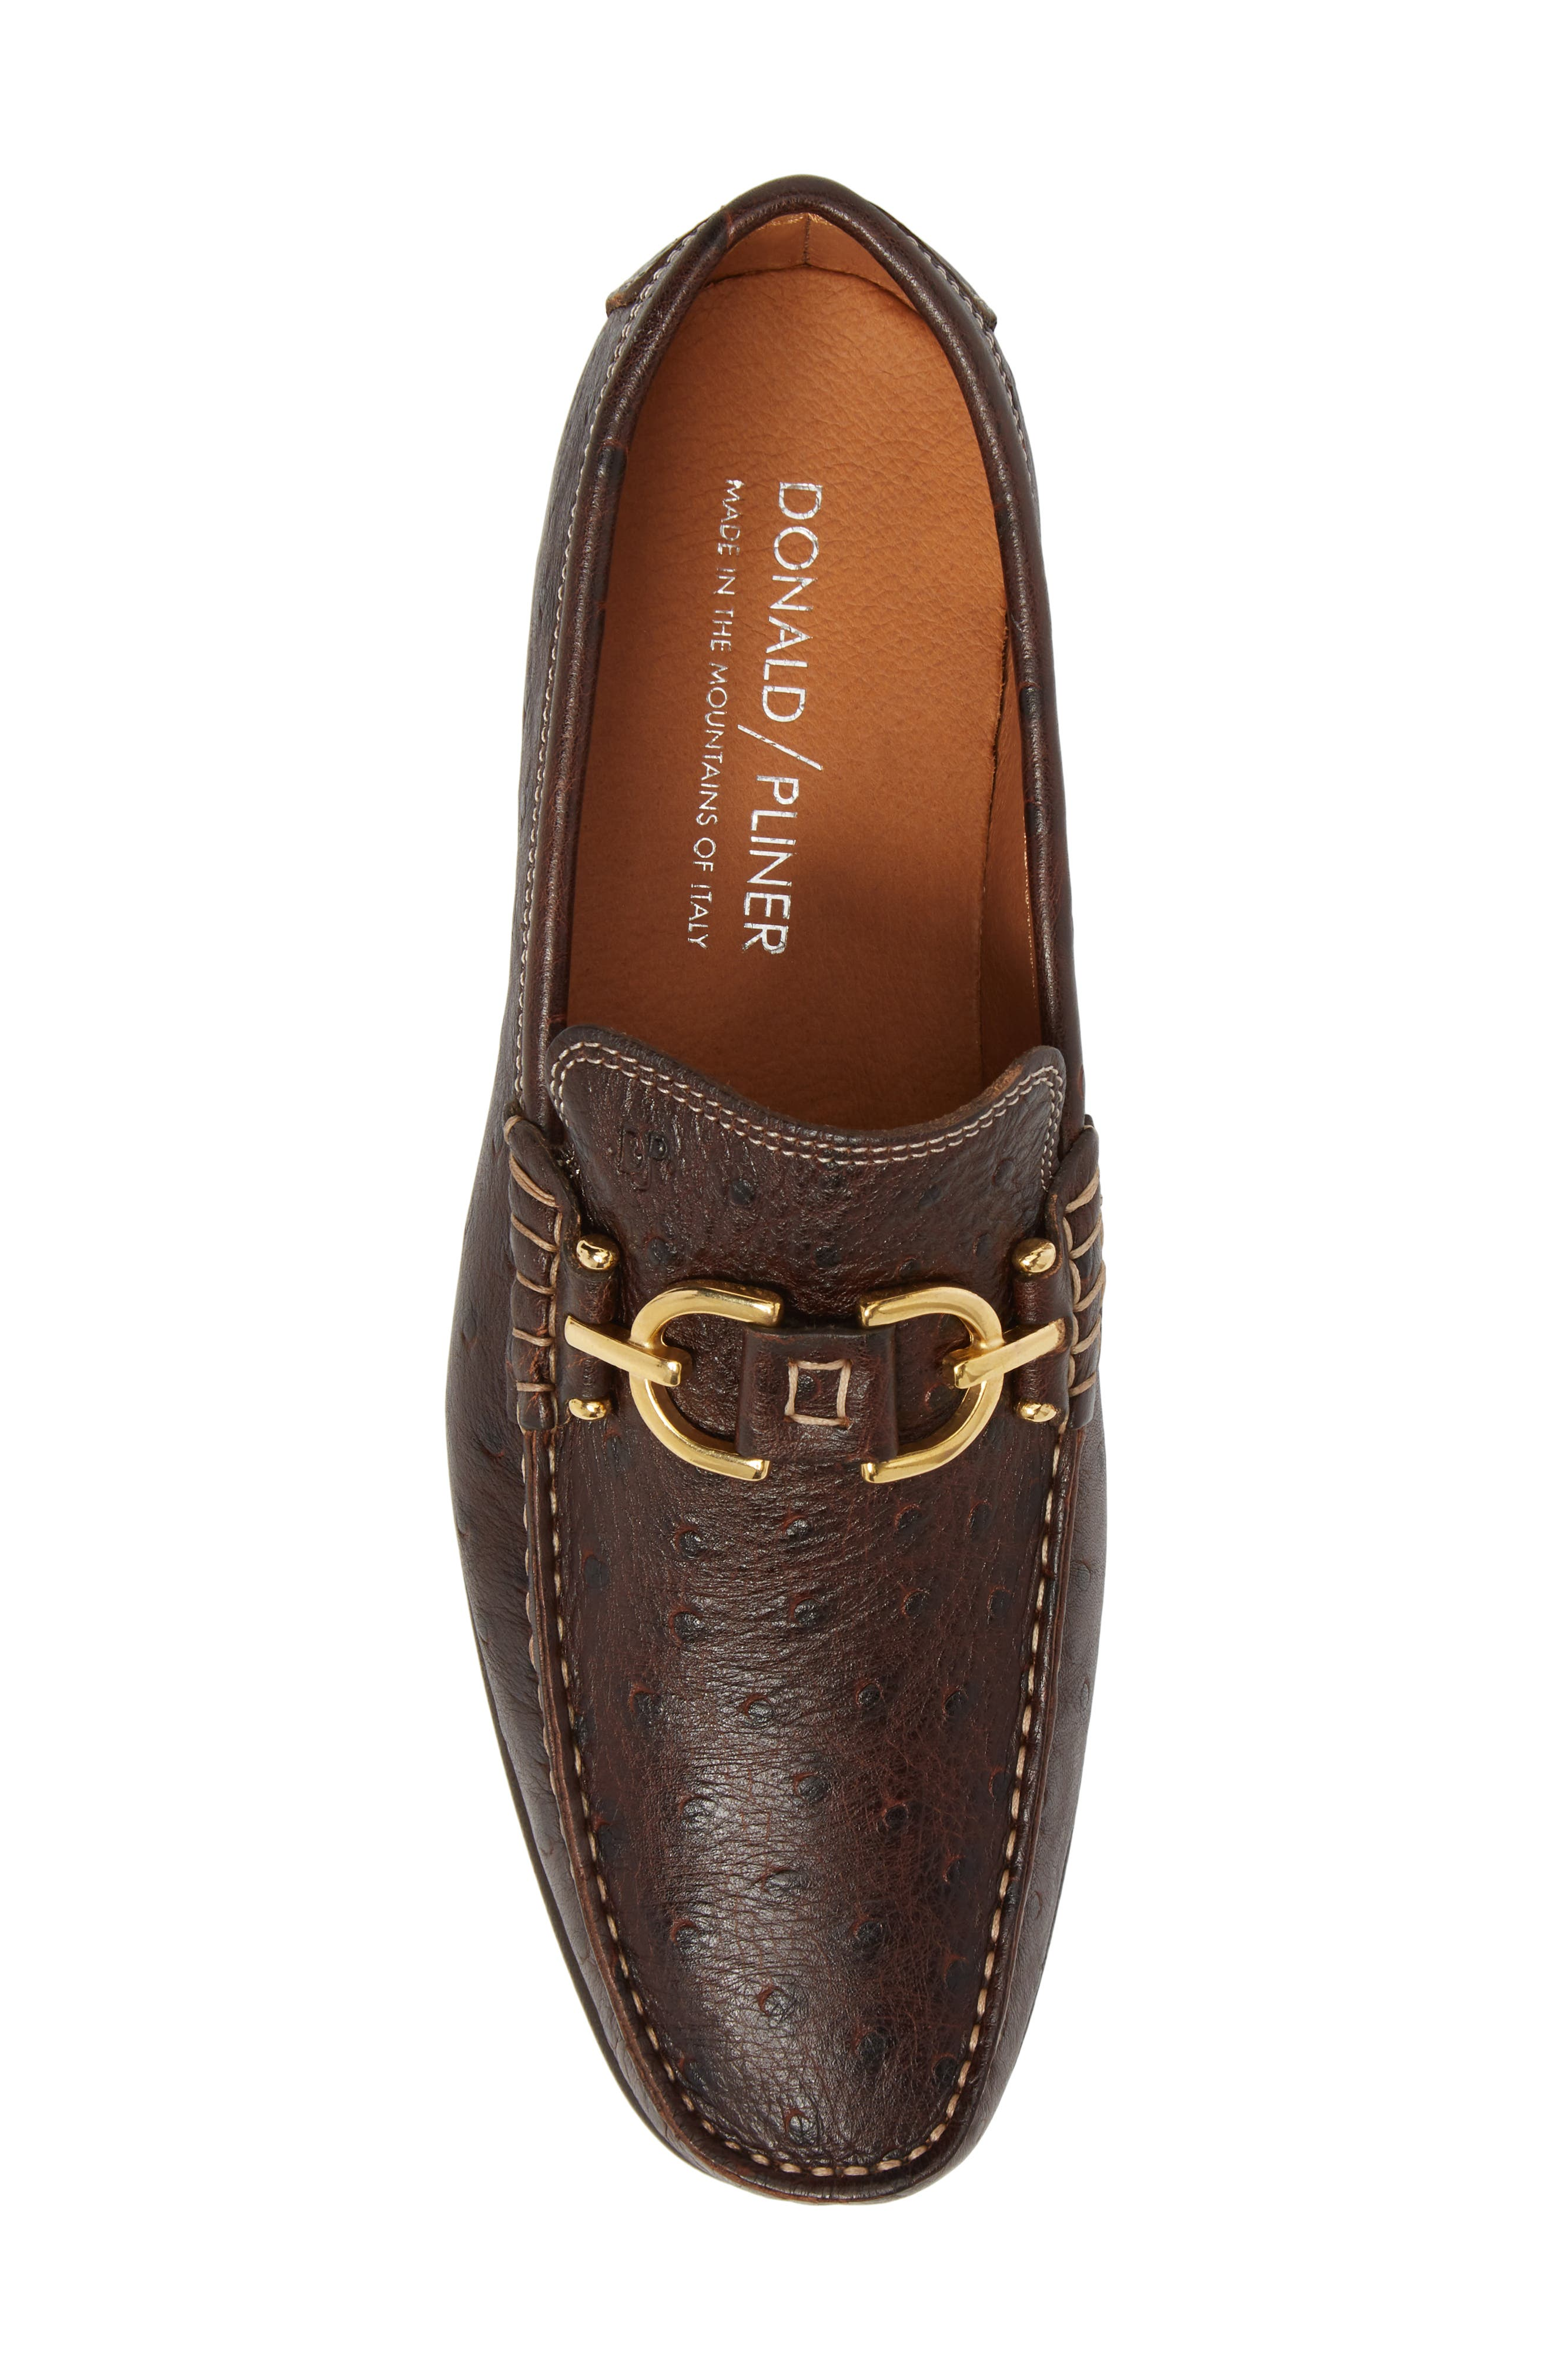 Dacio Square-Toe Loafer,                             Alternate thumbnail 5, color,                             BROWN LEATHER